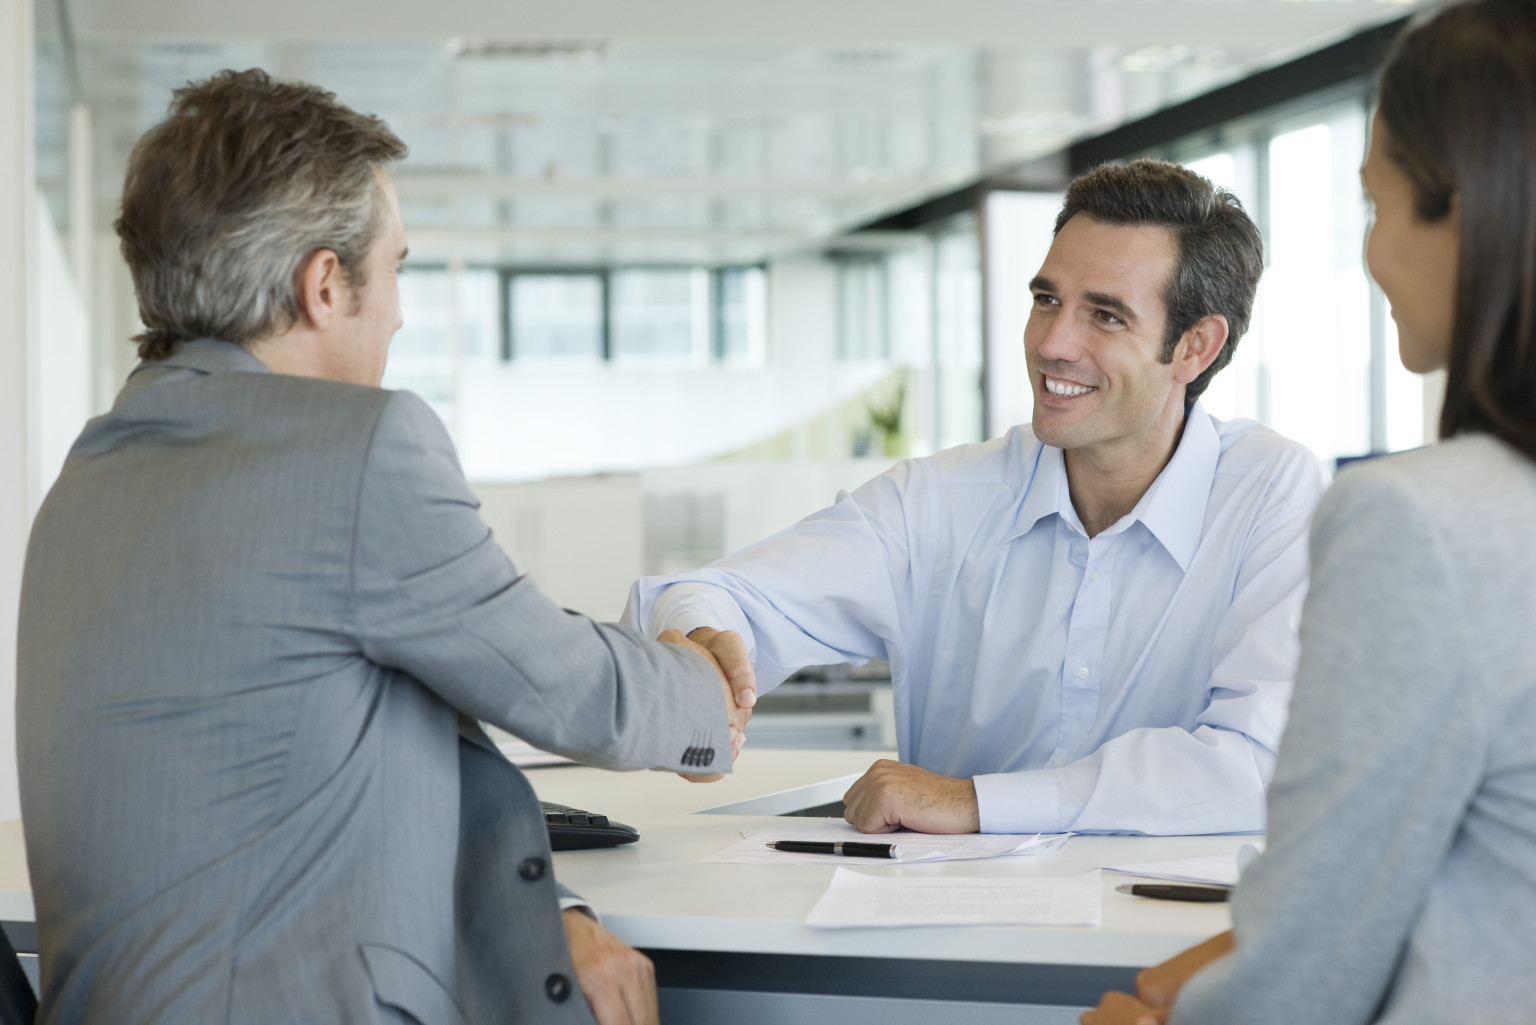 5 questions you should ask in every selling situation